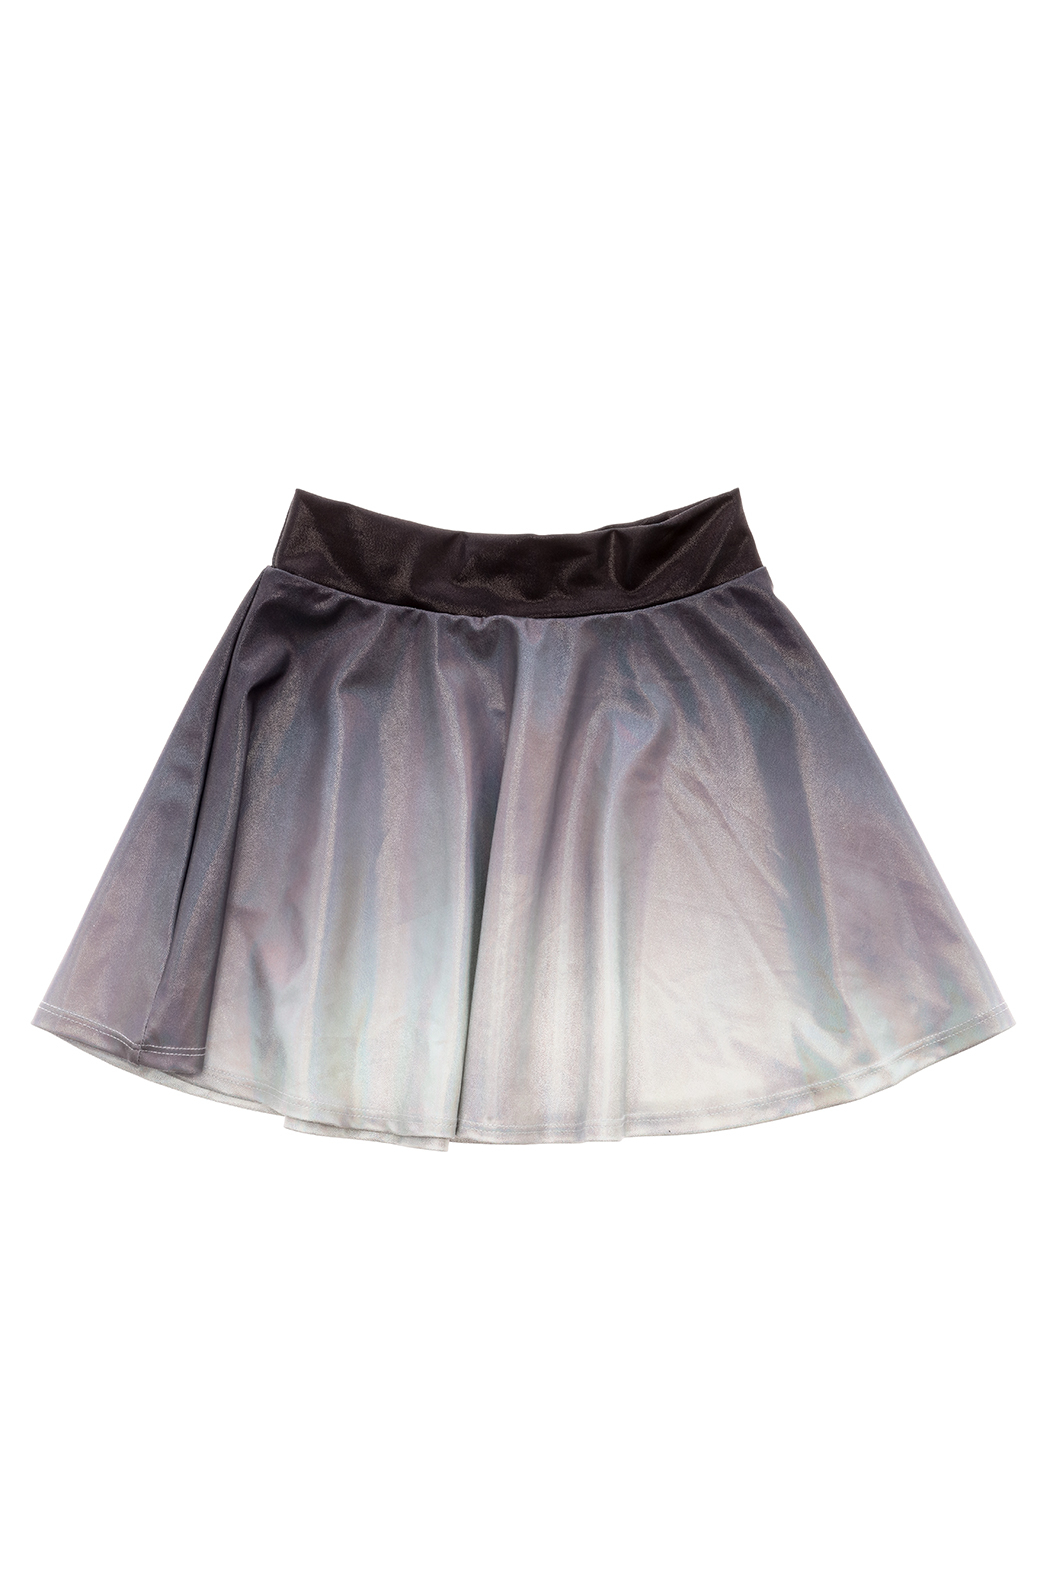 Rock Candy Ombre Metallic Skirt - Back Cropped Image